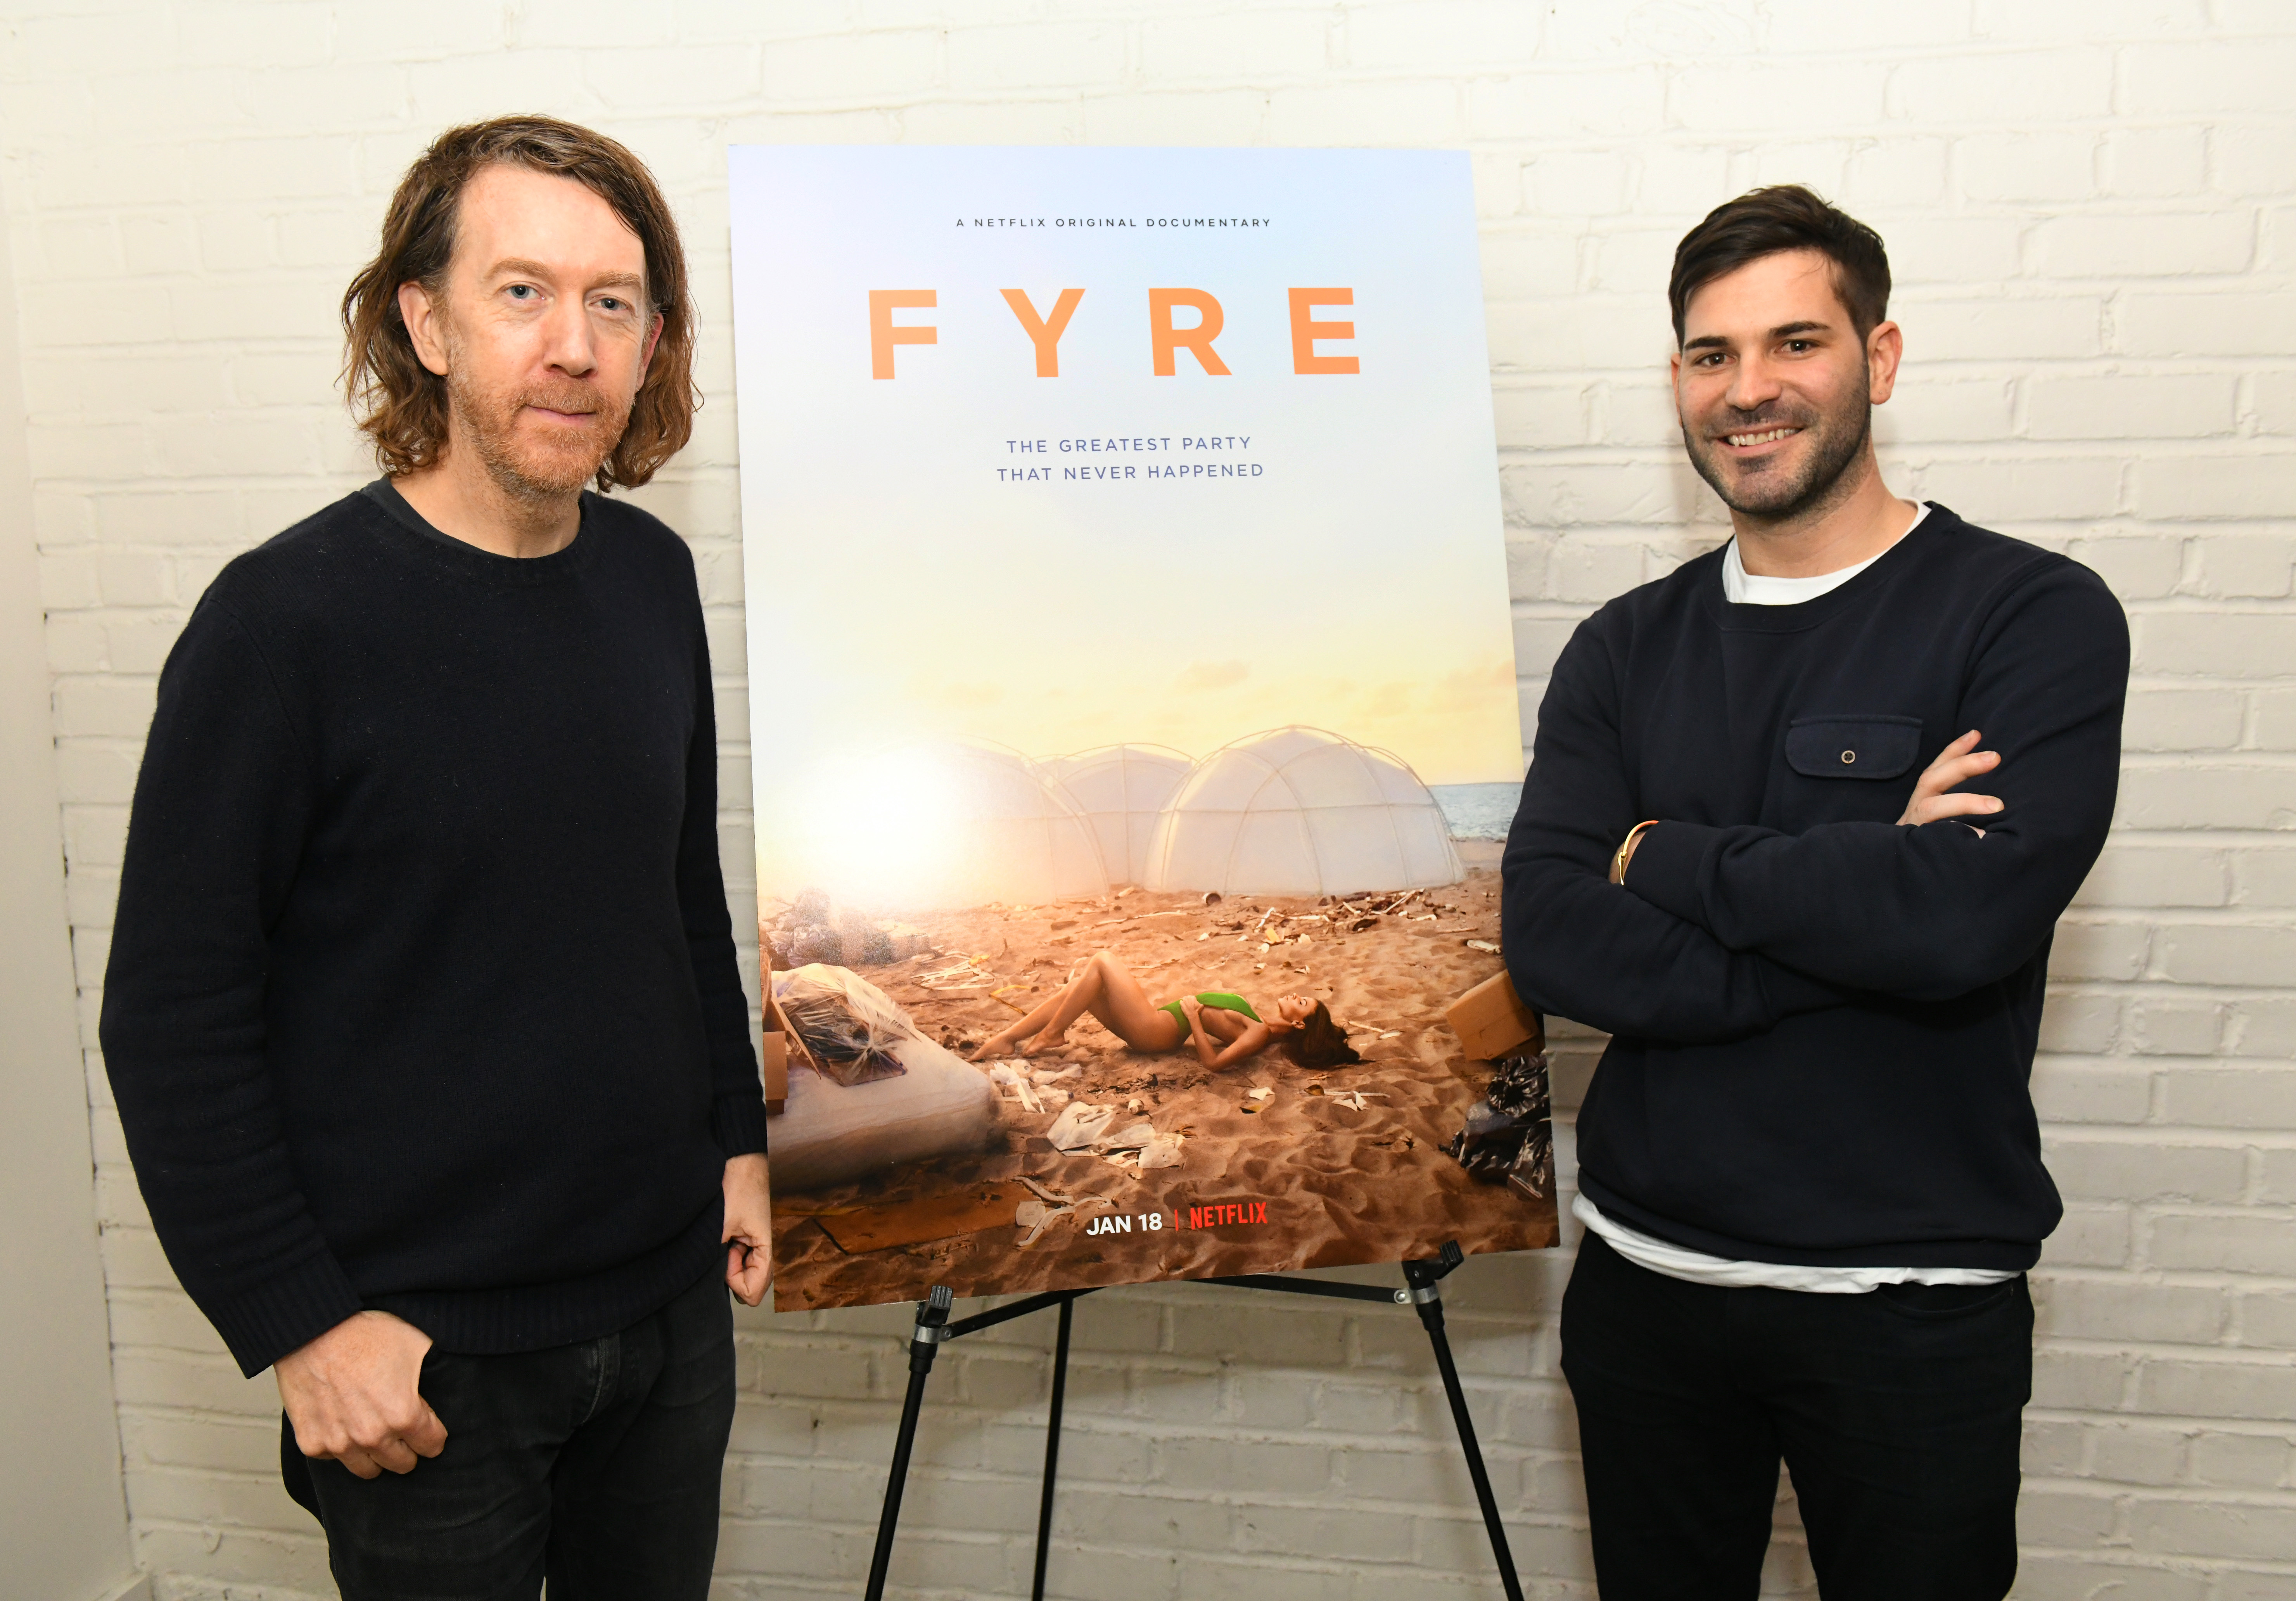 Fyre Festival Was a Huge Scam  Is Netflix's Fyre Documentary a Scam